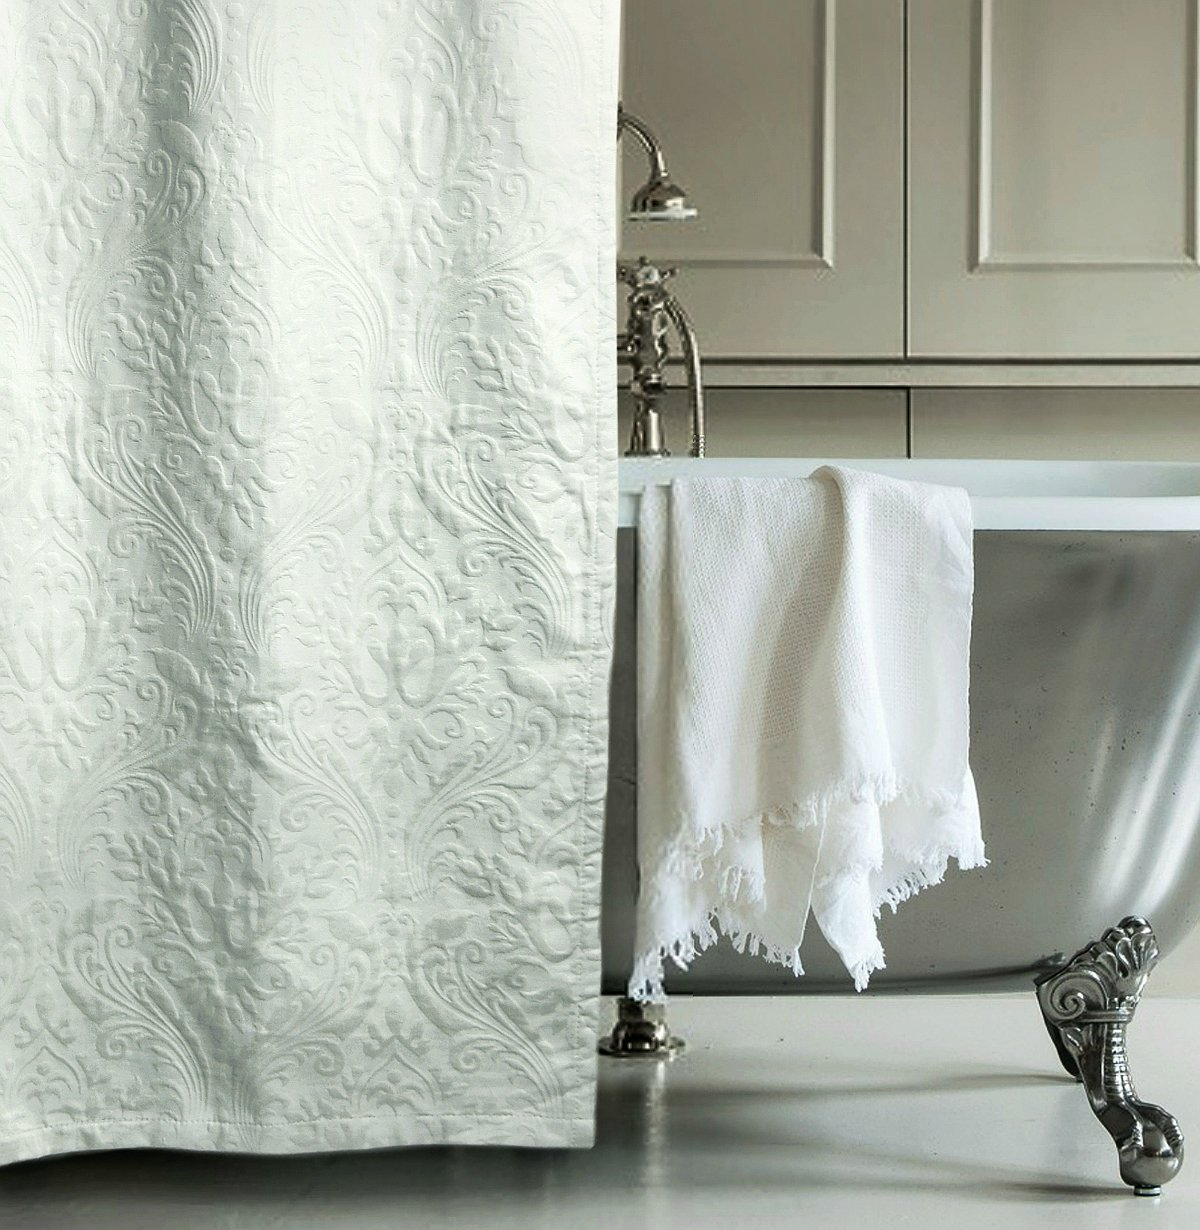 Matelasse Luxury Shower Curtain By Hotel Collection 100 Percent Cotton Fabric Textured Trapunto Gray Damask Paisley Scroll Jacquard Design White Or